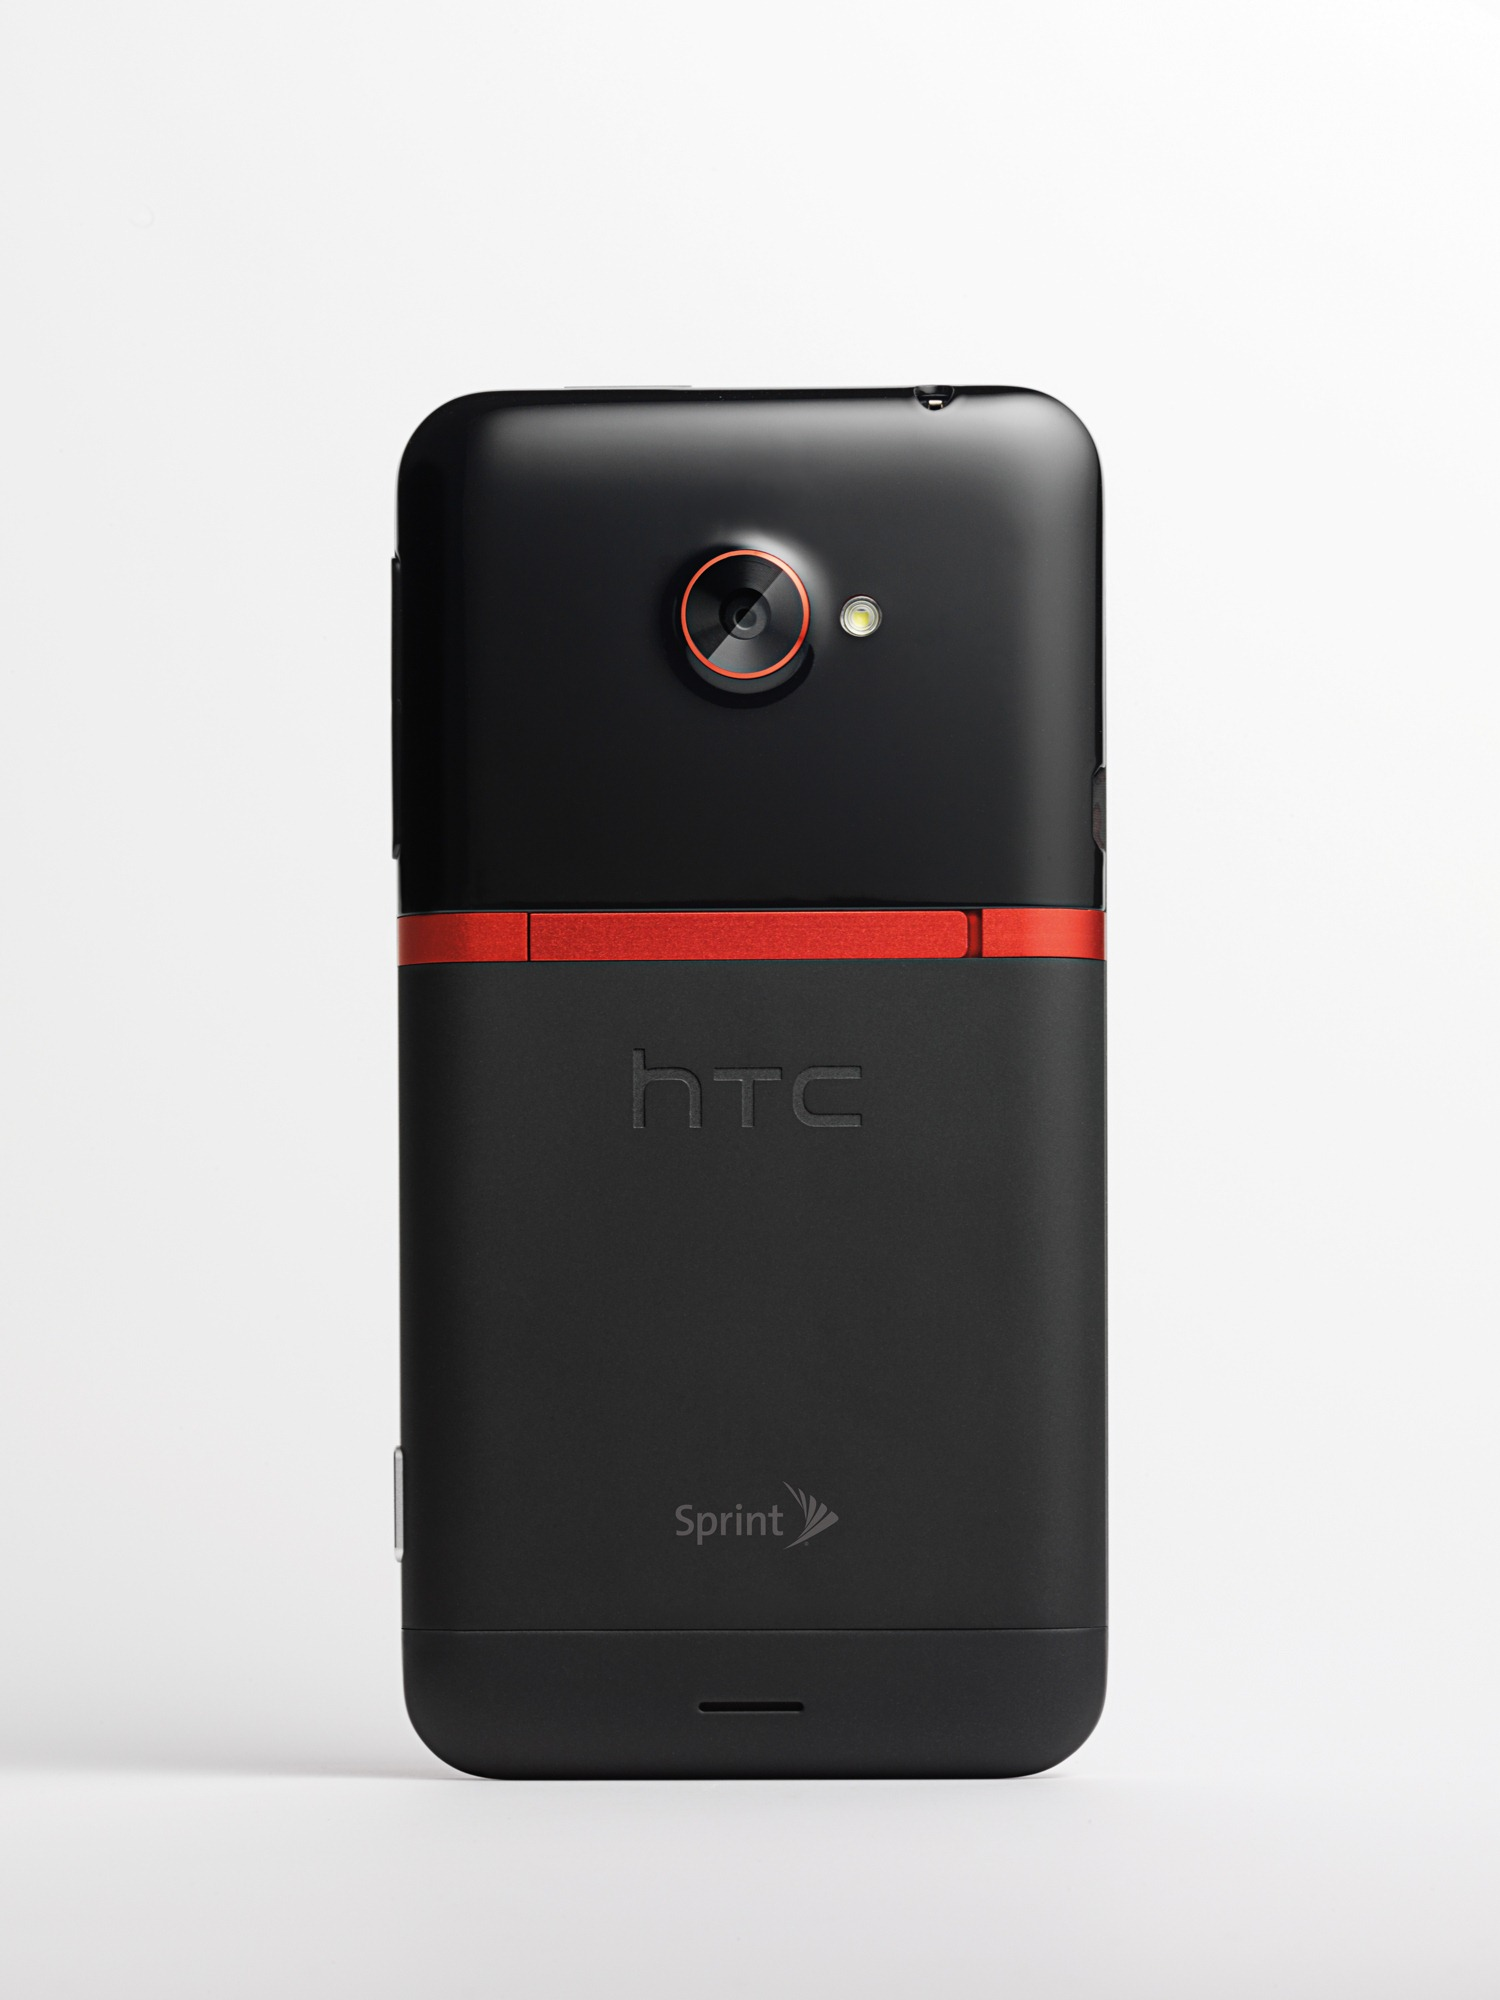 Updated Sprint And Htc Announce The 199 Evo 4g Lte 4 7